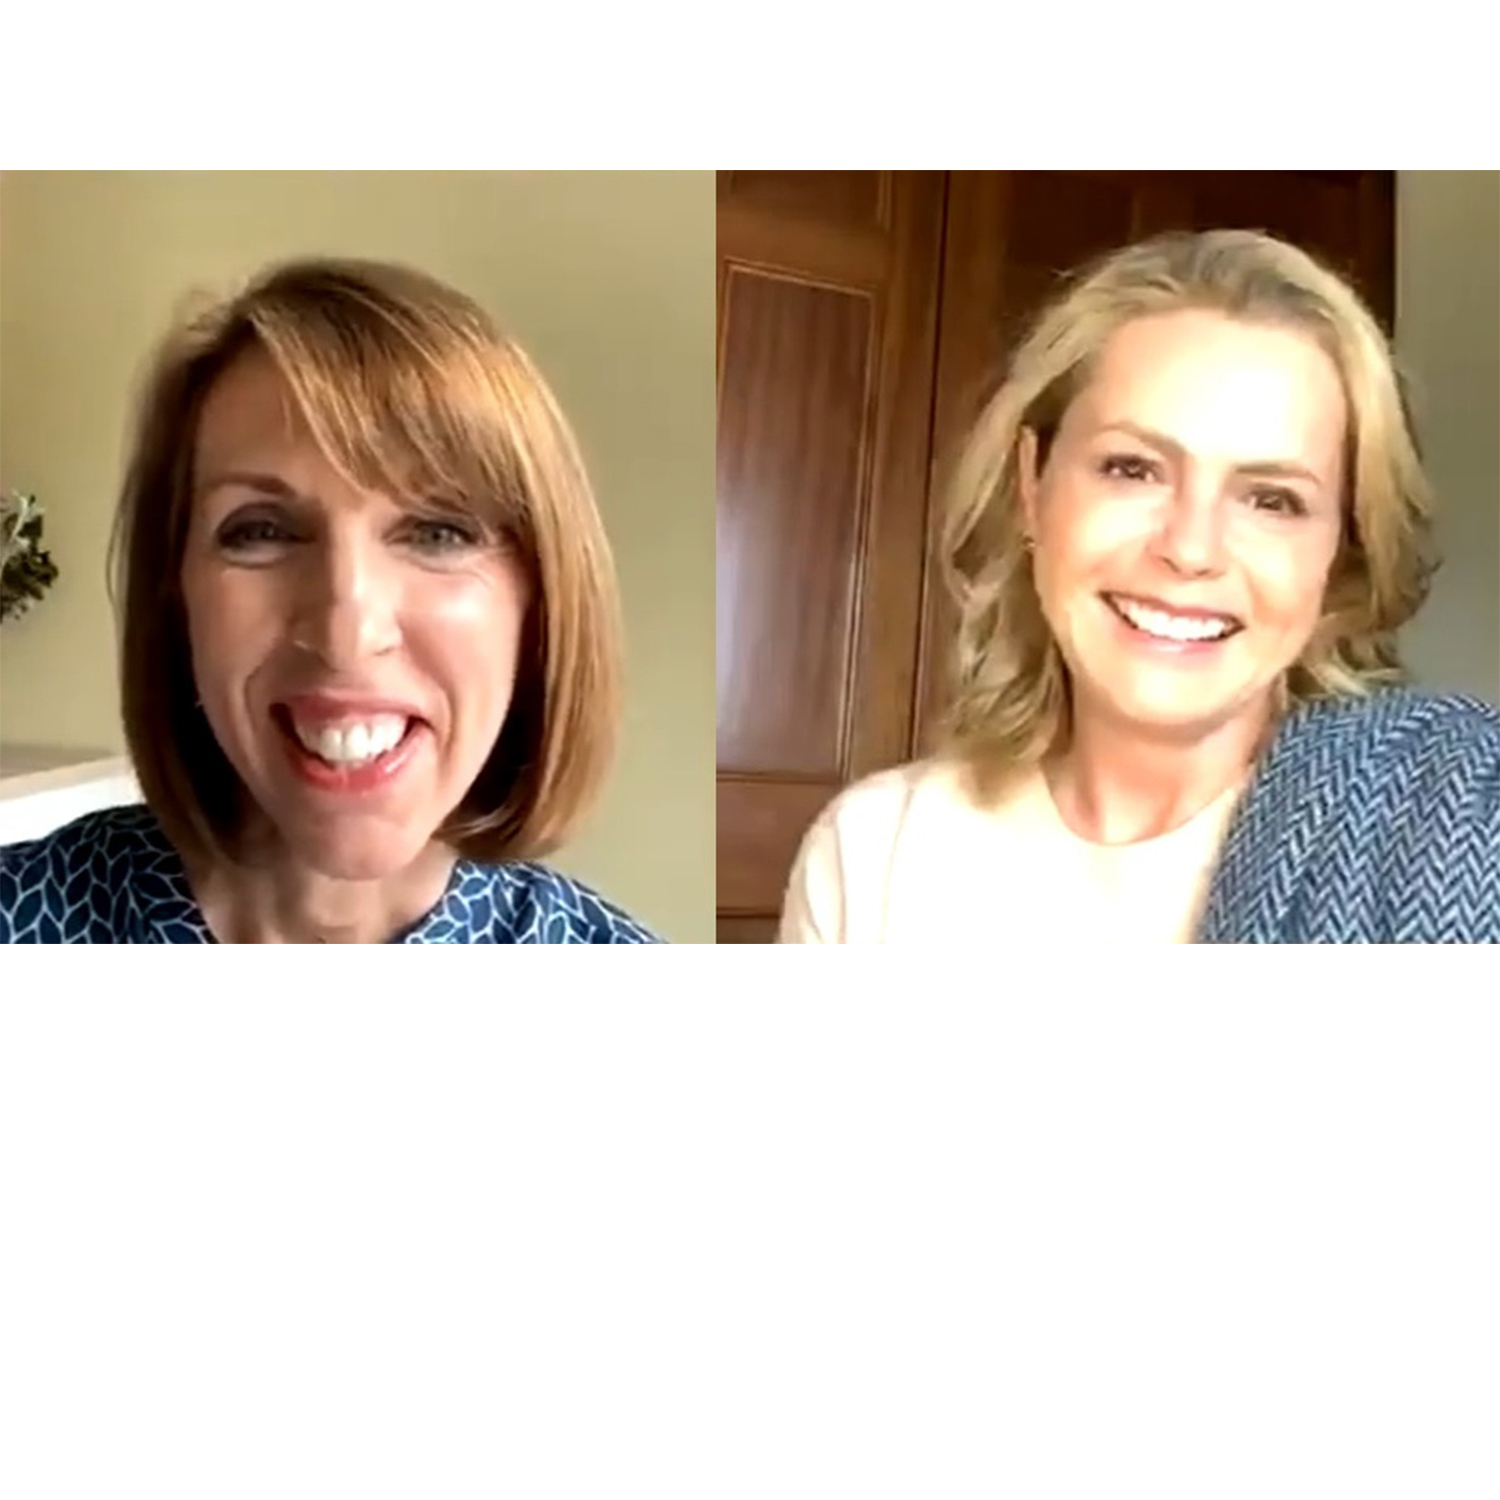 050 Empowering Women to Receive the Right Menopause Advice - Liz Earle MBE & Dr Louise Newson